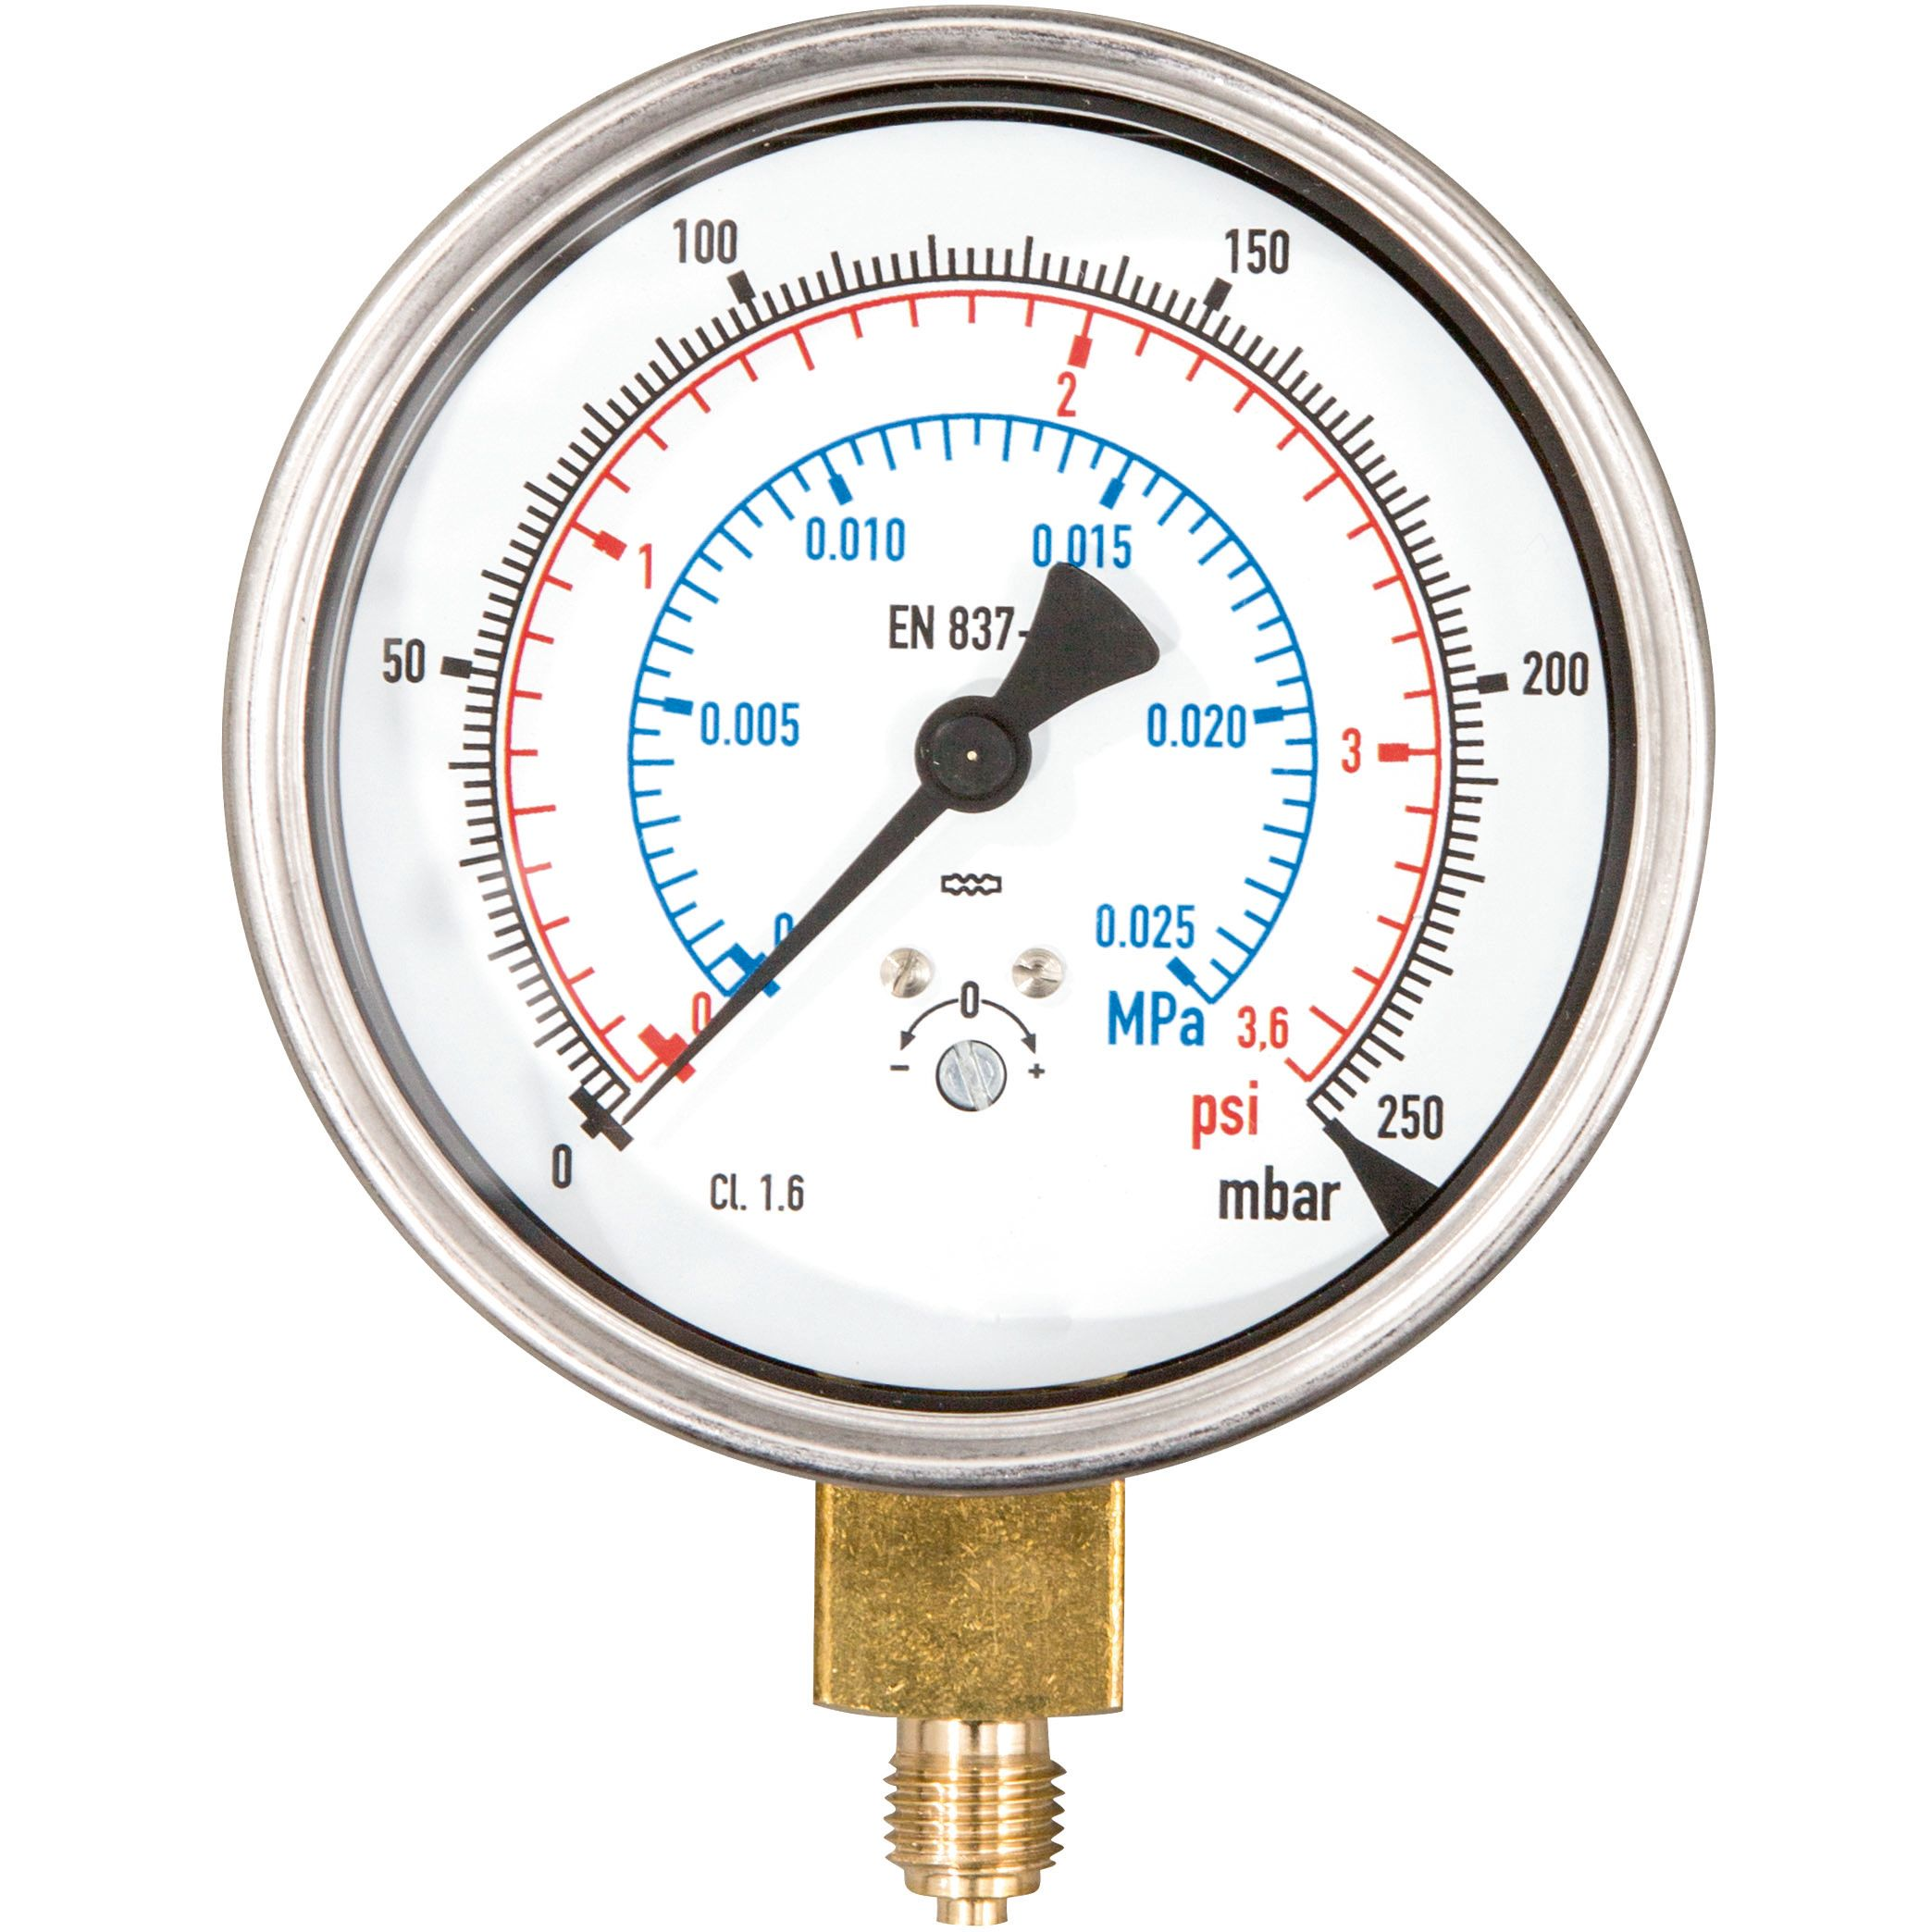 REMS 047069 Manometer för REMS Multi-Push 250 mbar